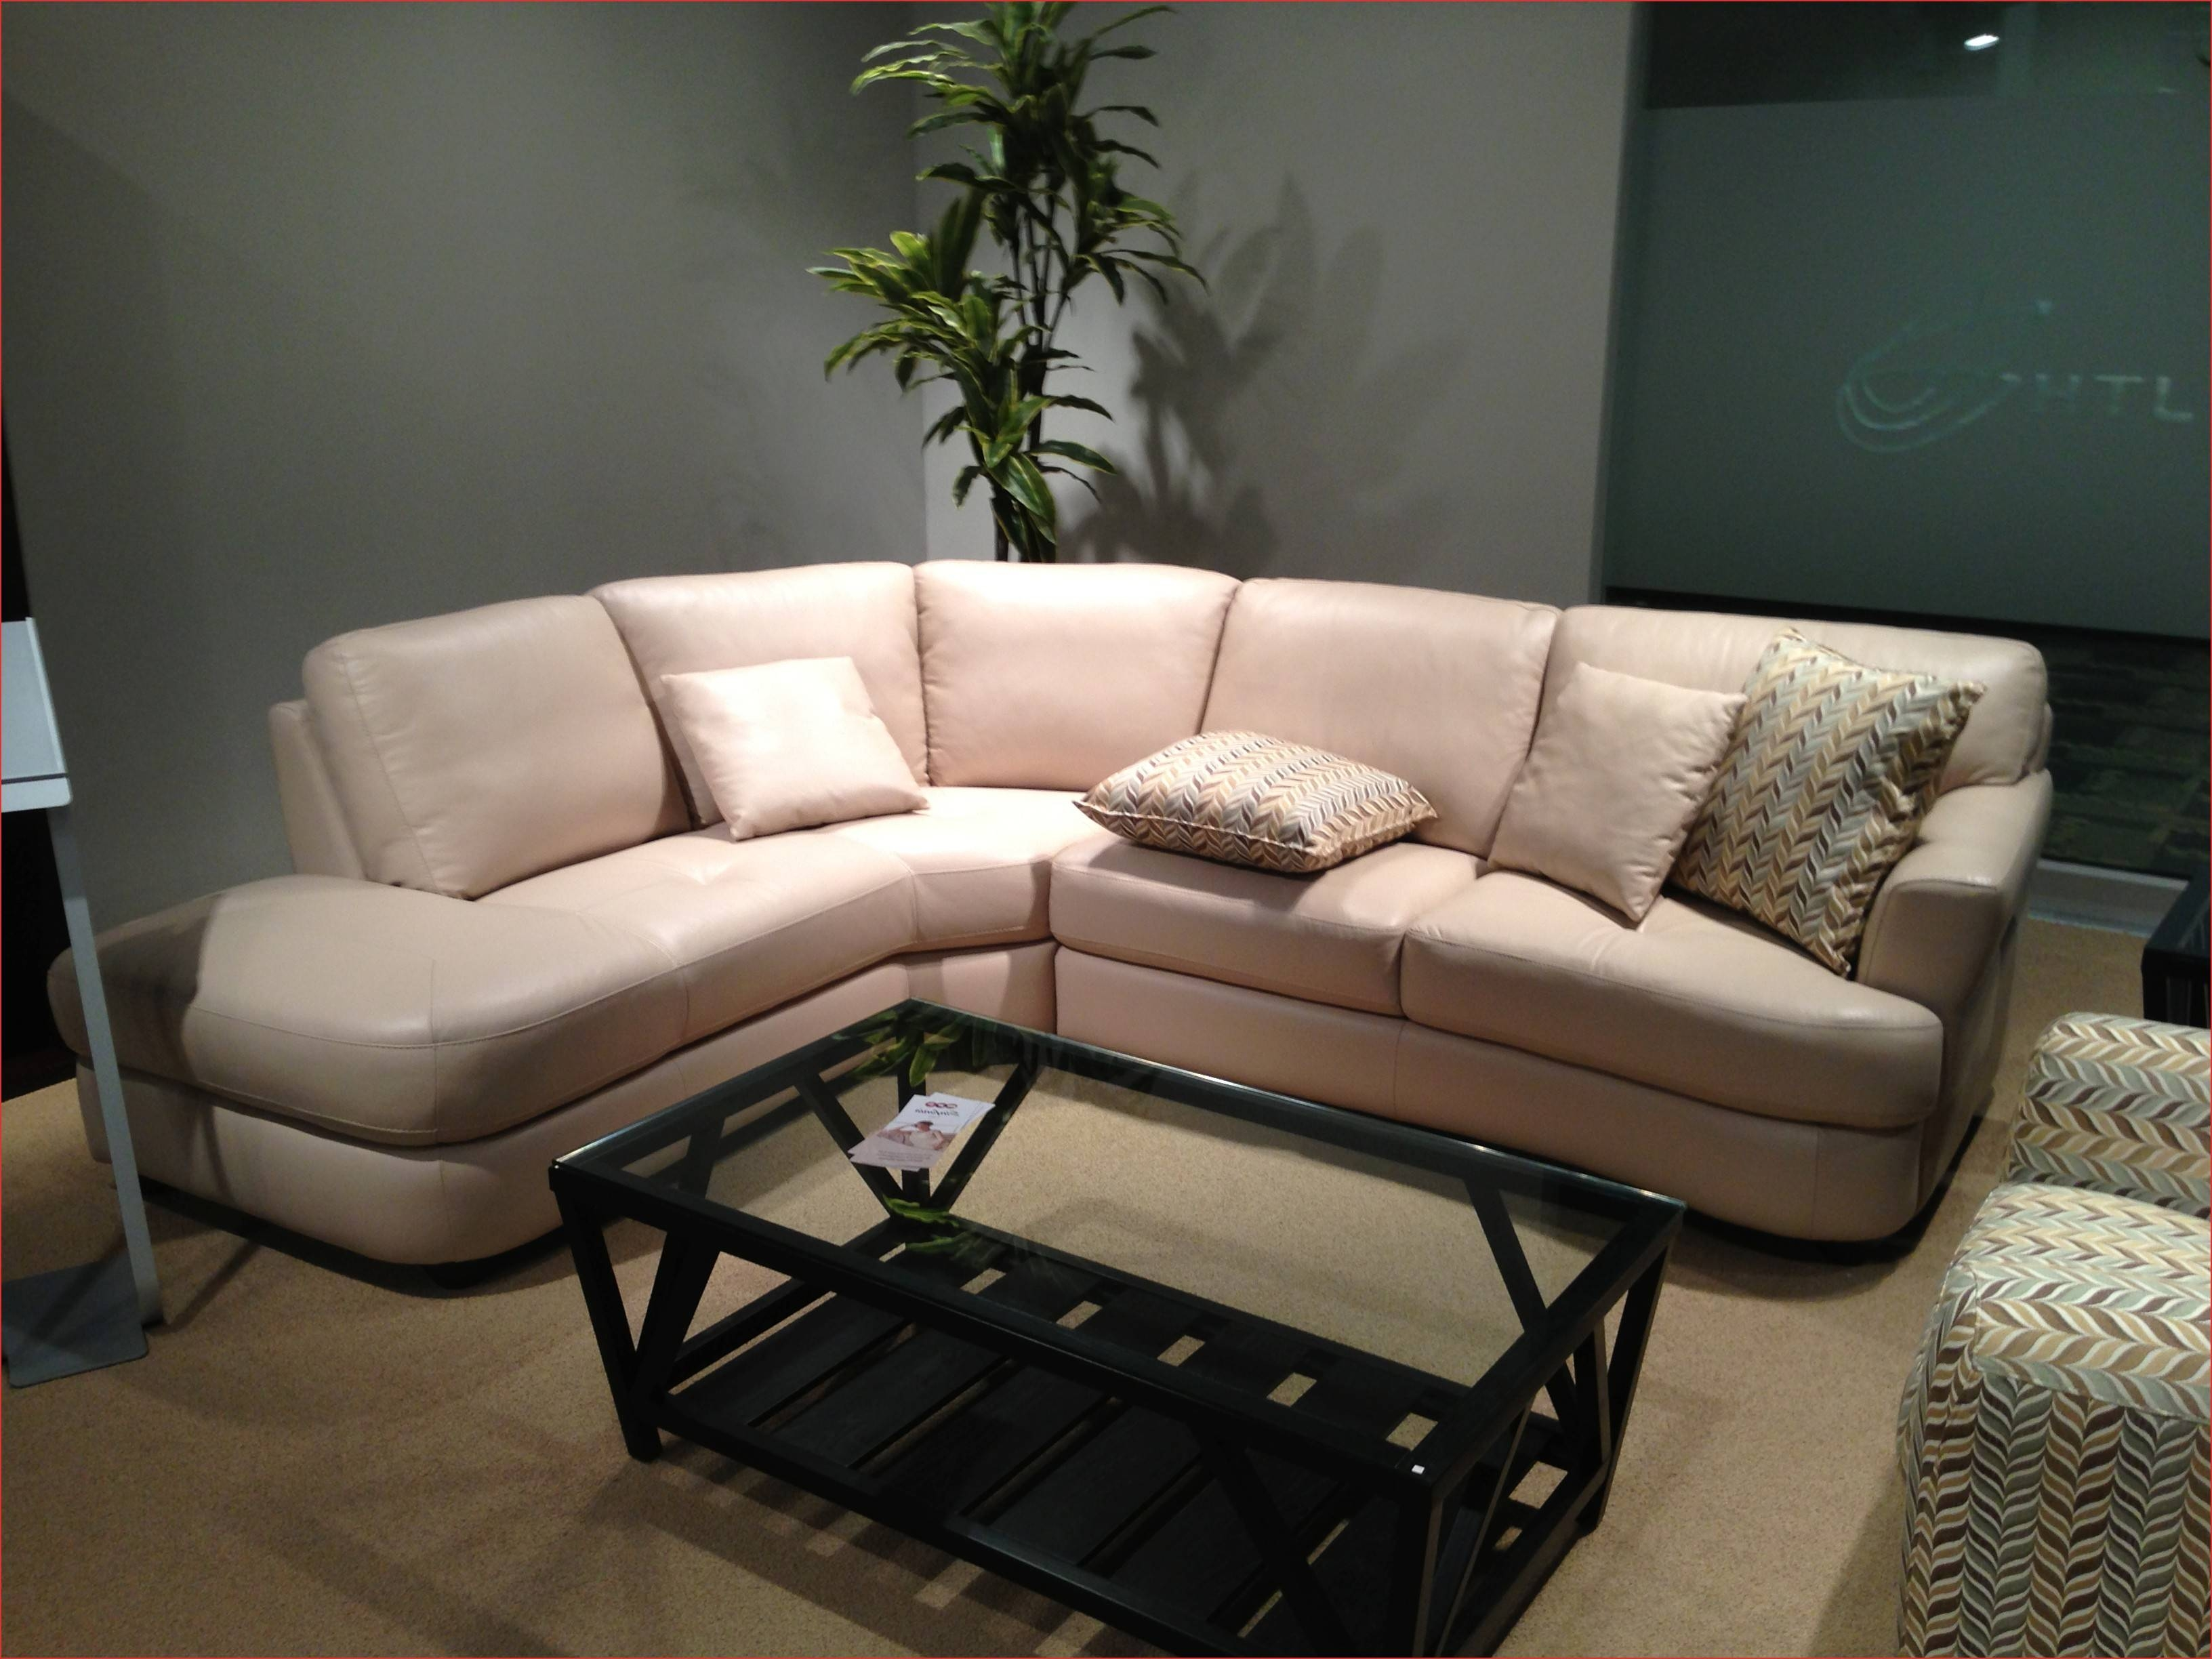 Sofas Portland Oregon Inspirational Ideas With Cool Sectional with regard to Sectional Sofas Portland (Image 30 of 30)